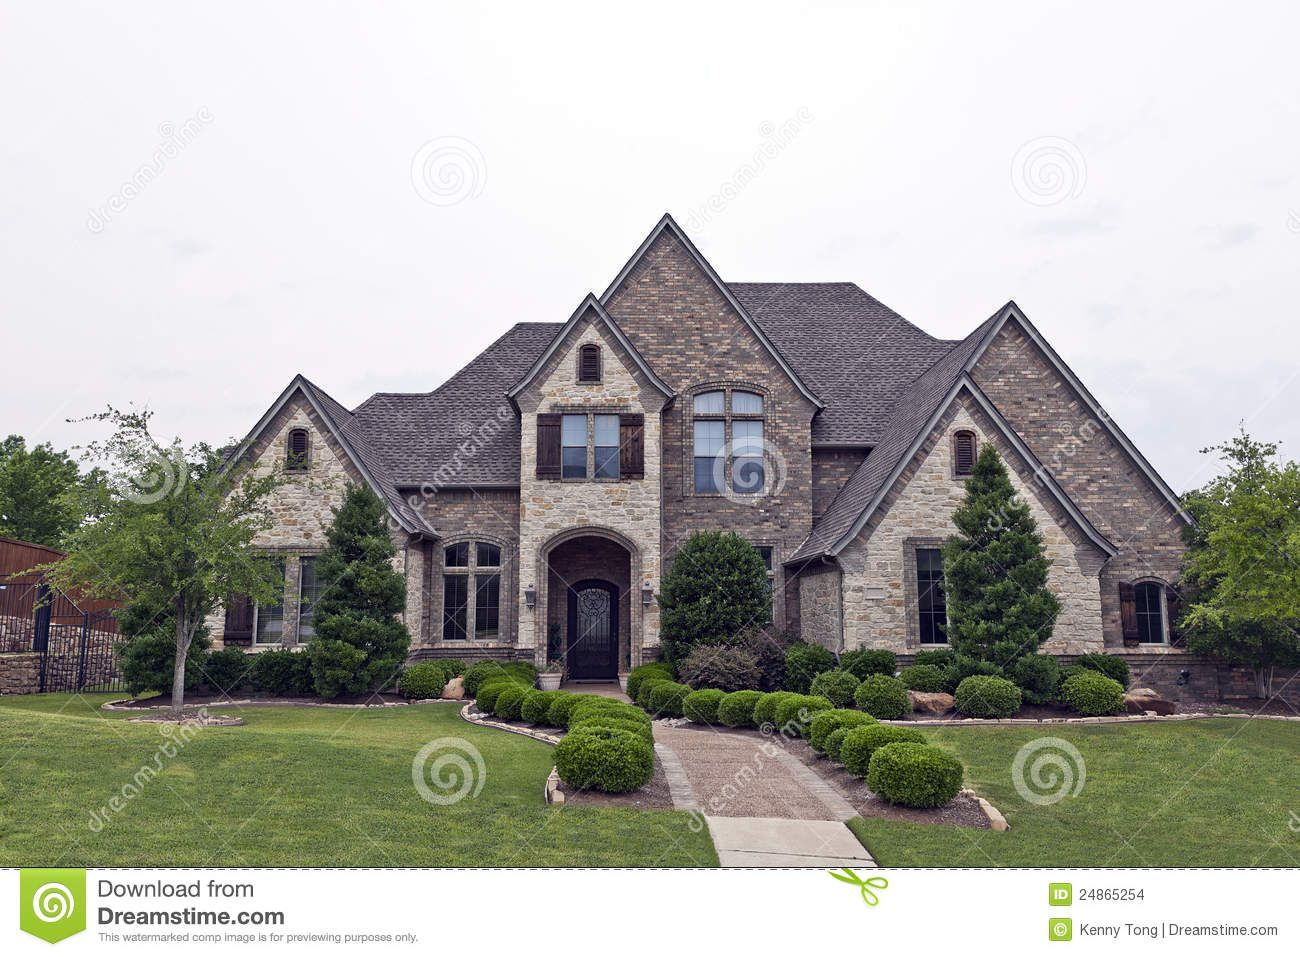 Rock and stone homes beautiful two story luxury brick for Beautiful brick and stone homes